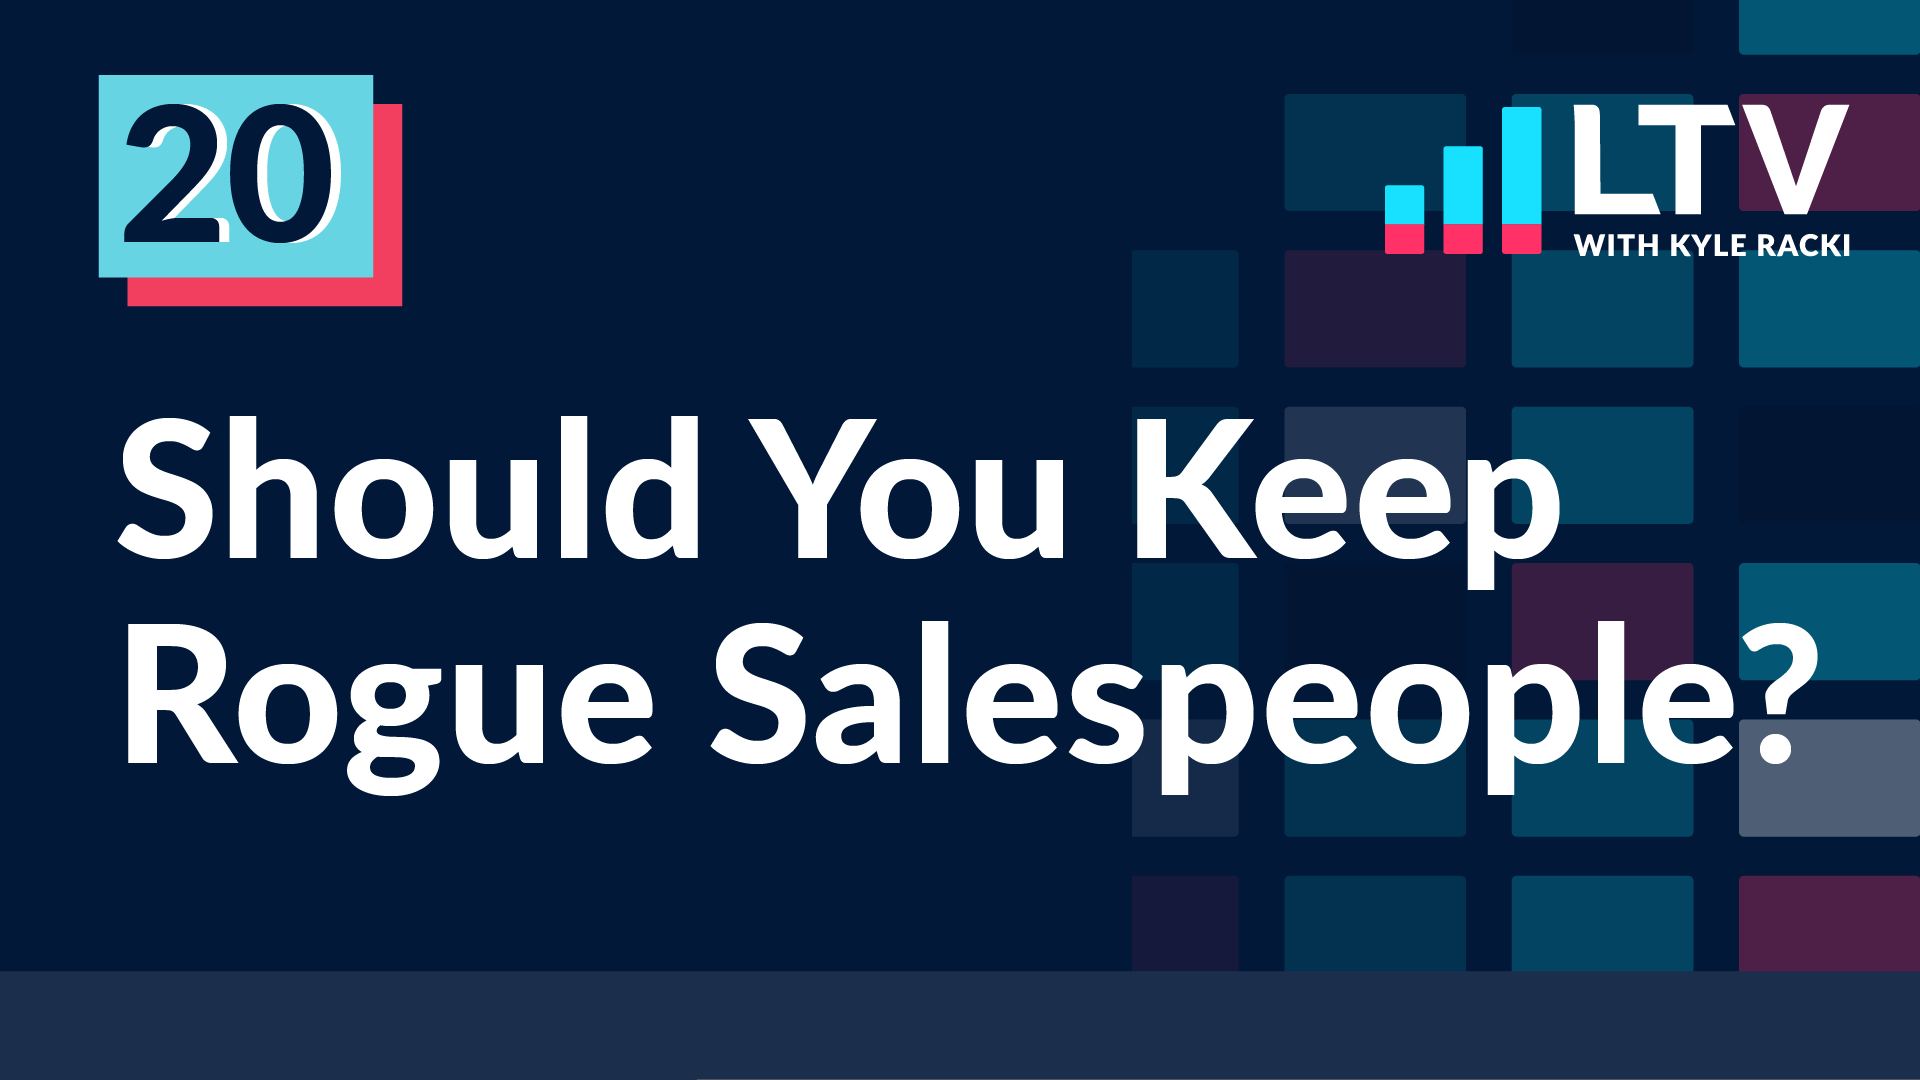 LTV Podcast Episode 20: Should You Keep Rogue Salespeople?